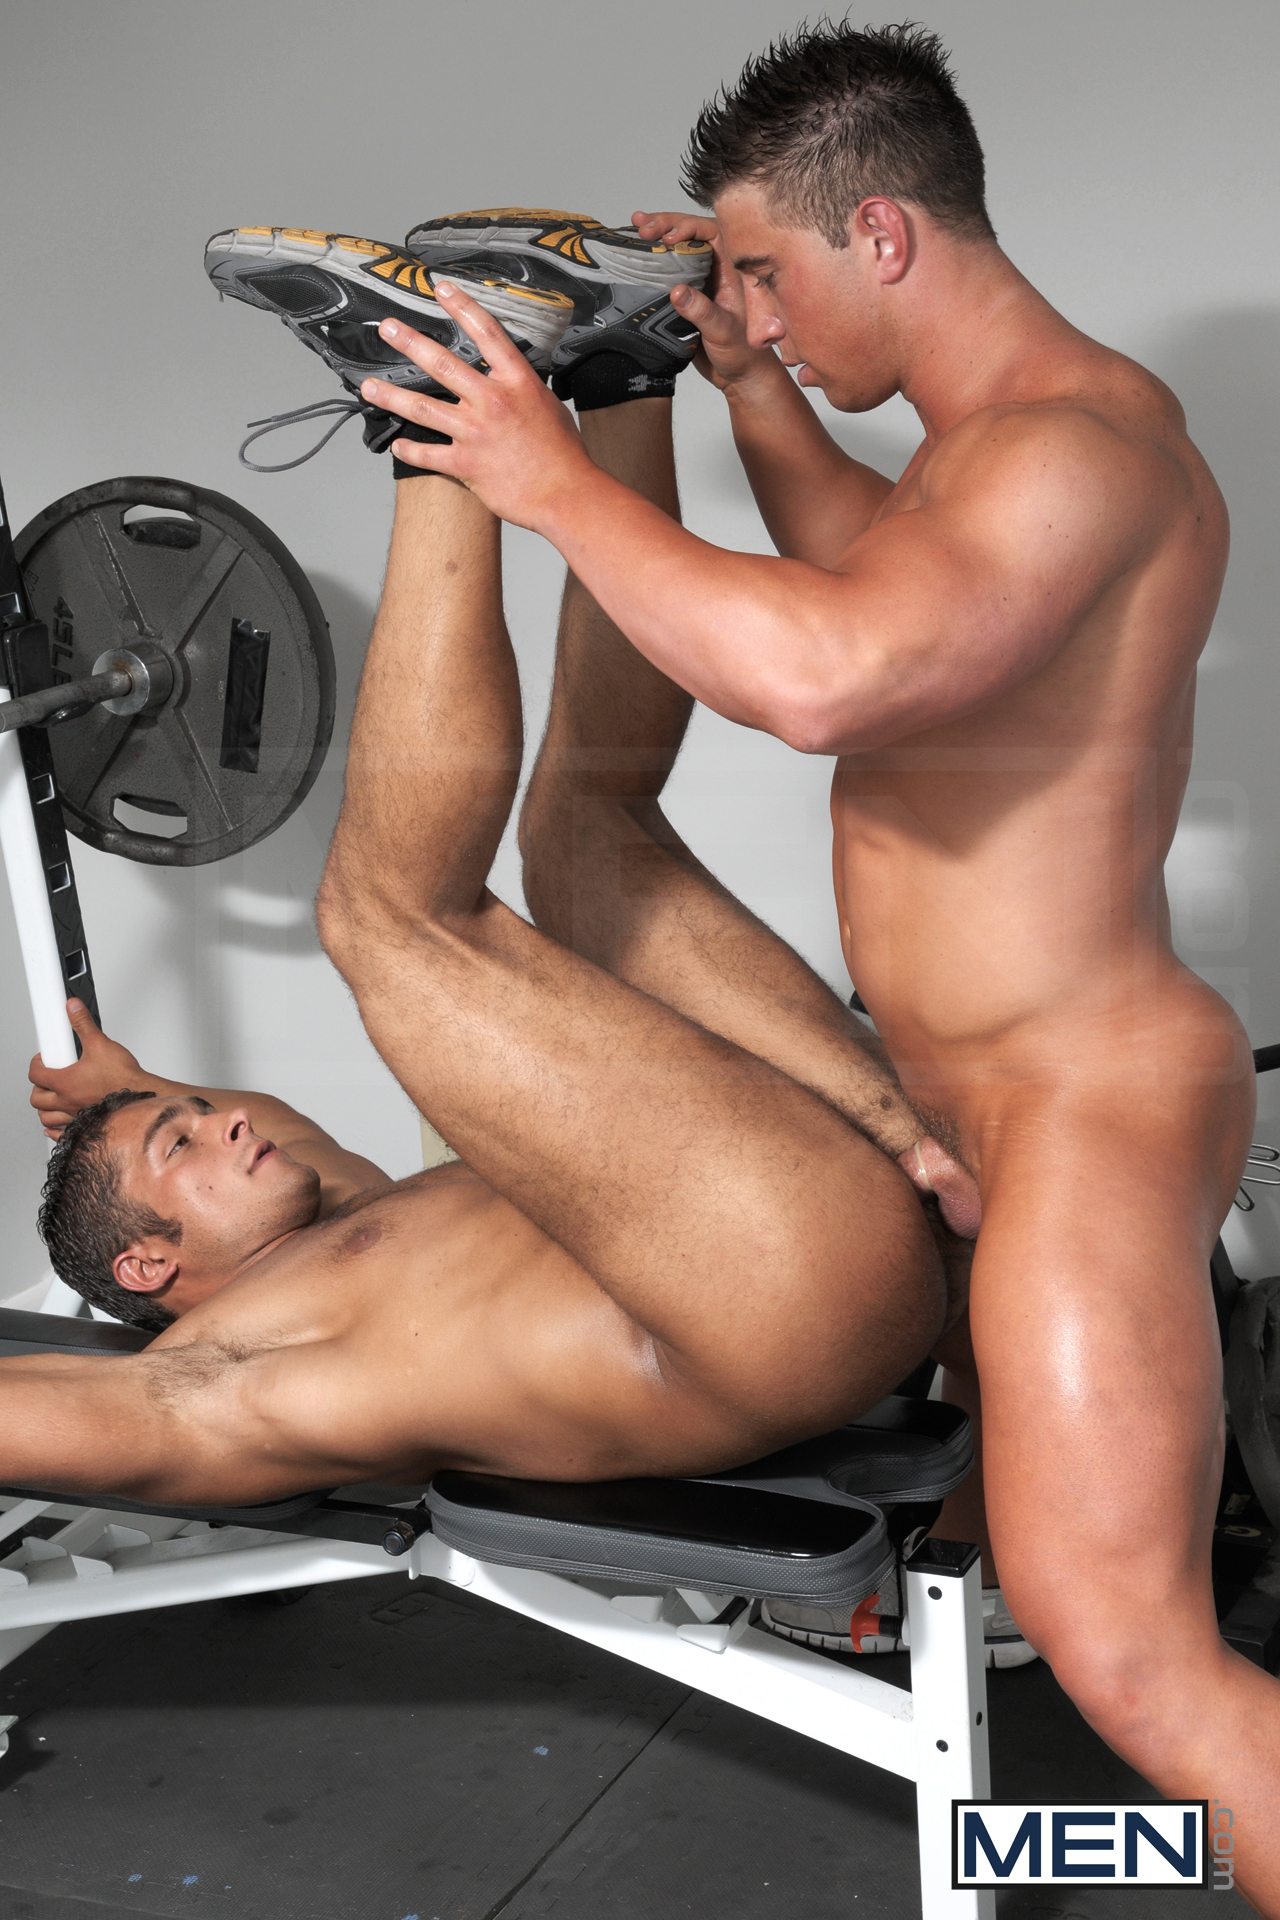 Men bodybuilders gay sex trailer first time